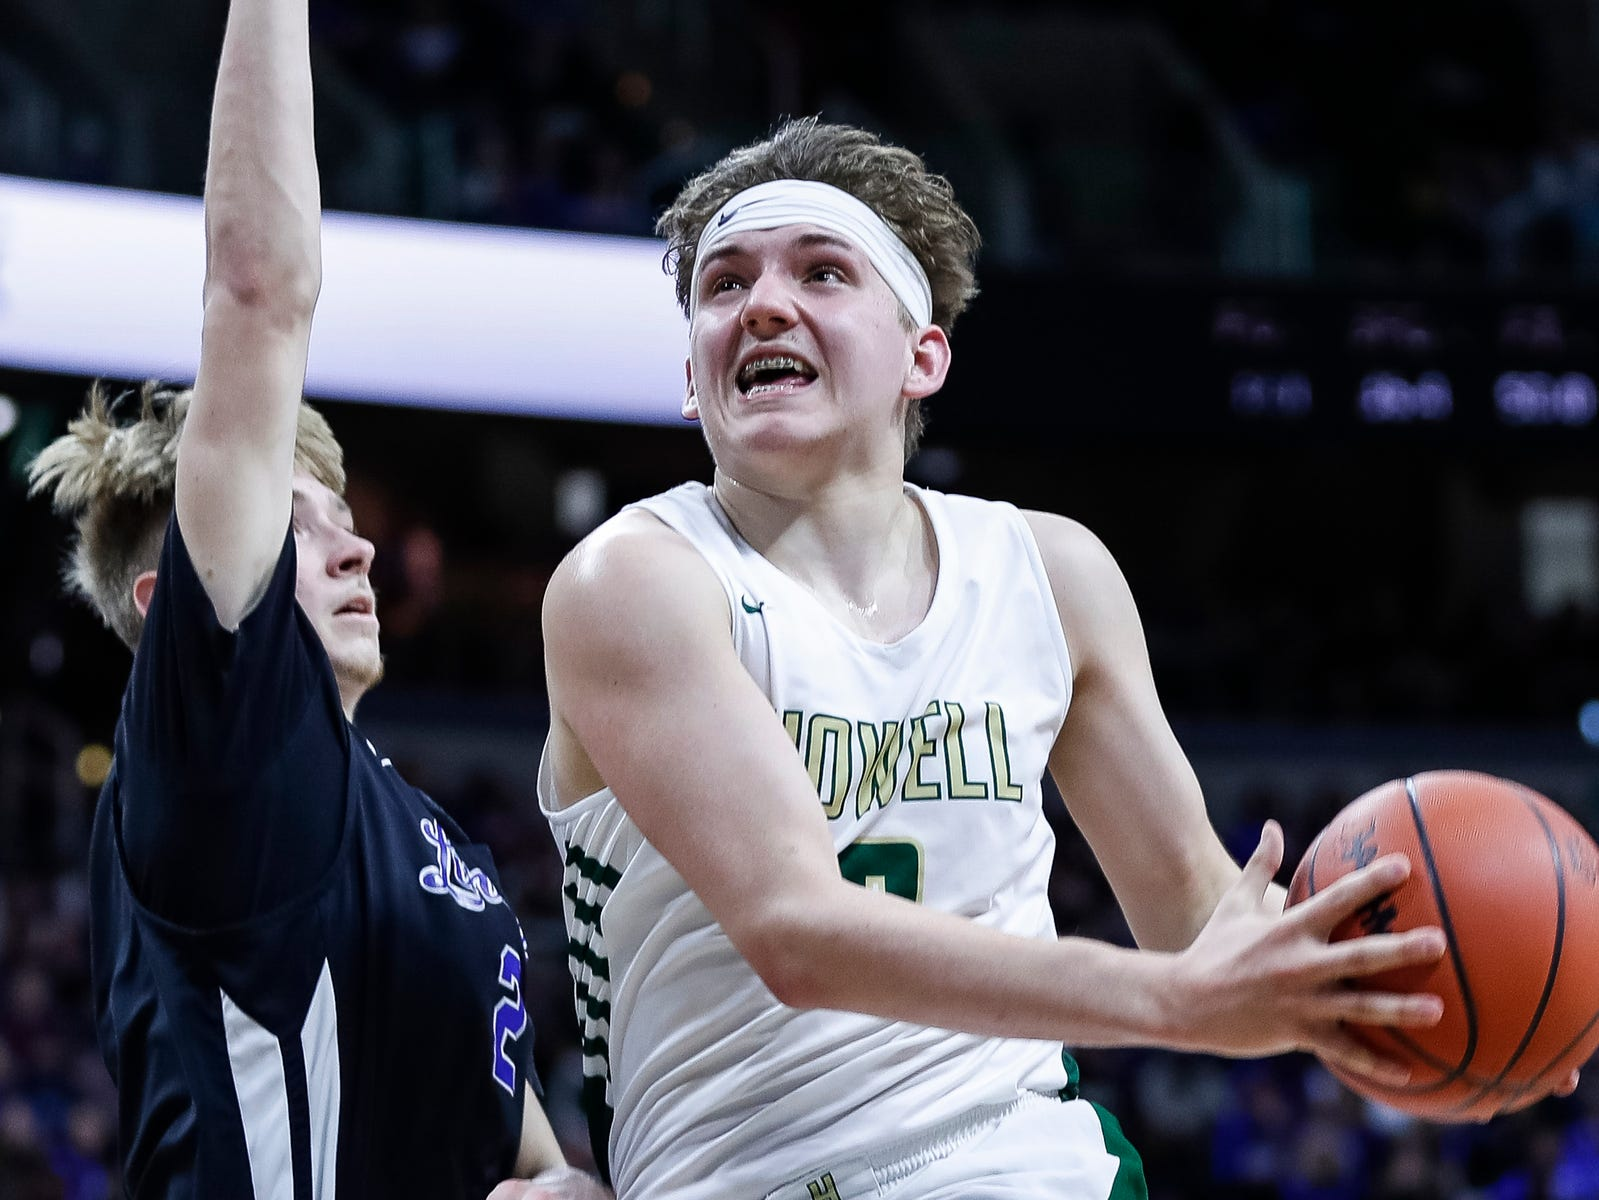 Howell's Josh Palo (0) makes a layup against Ypsilanti Lincoln's Cameron Johnson (2) during the second  half of MHSAA Division 1 semifinal at the Breslin Center in East Lansing, Friday, March 15, 2019.